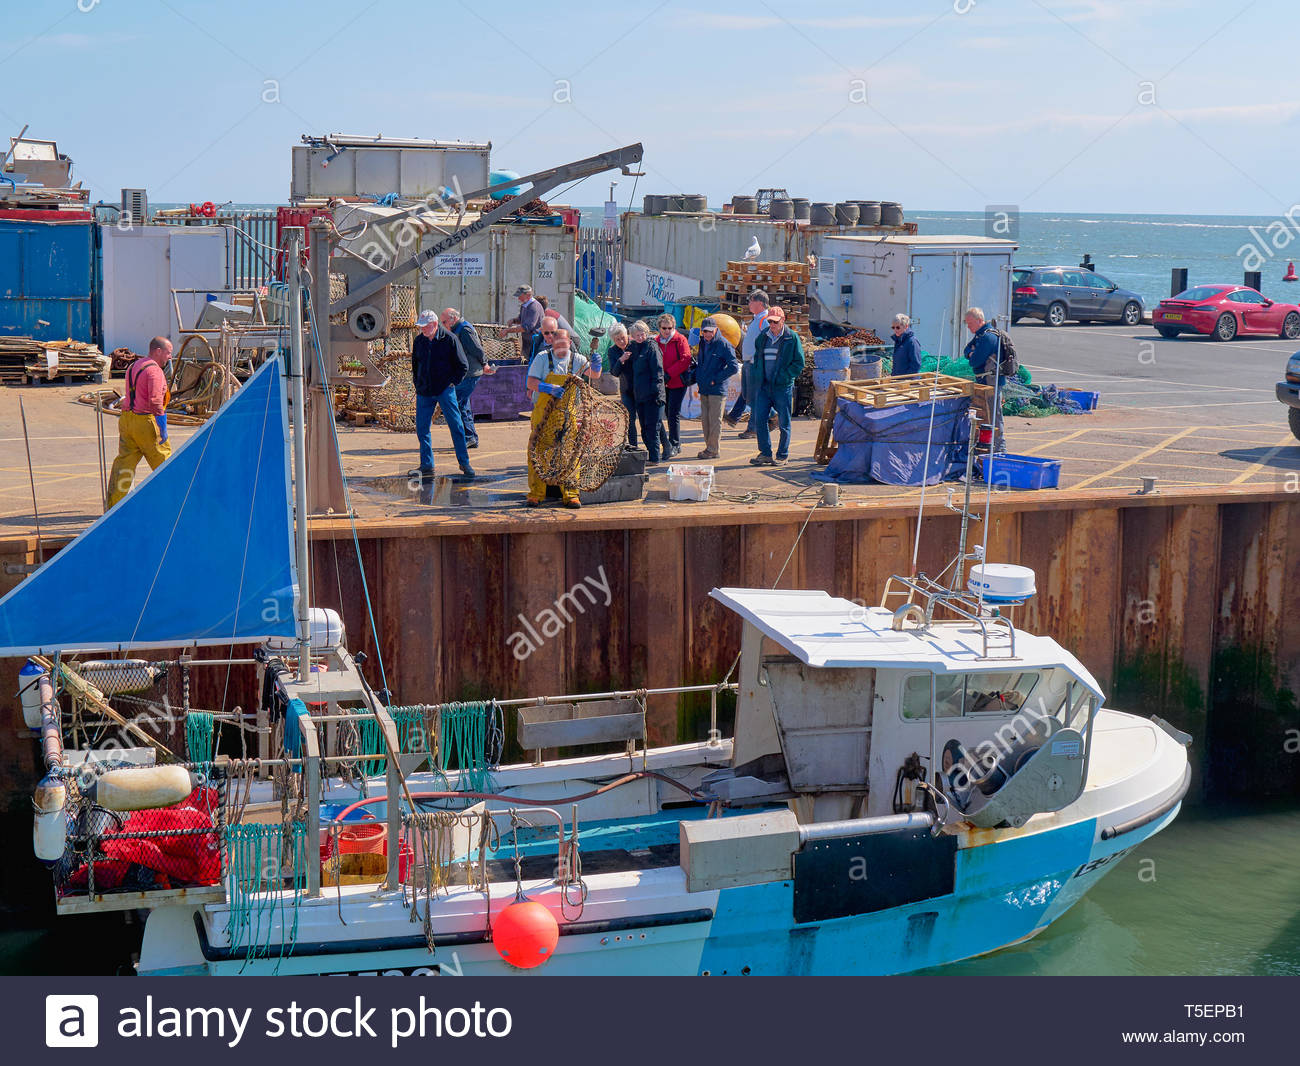 Group of people watching trawlermen off loading their daily catch of fresh caught fish in exmouth harbour marina england uk - Stock Image